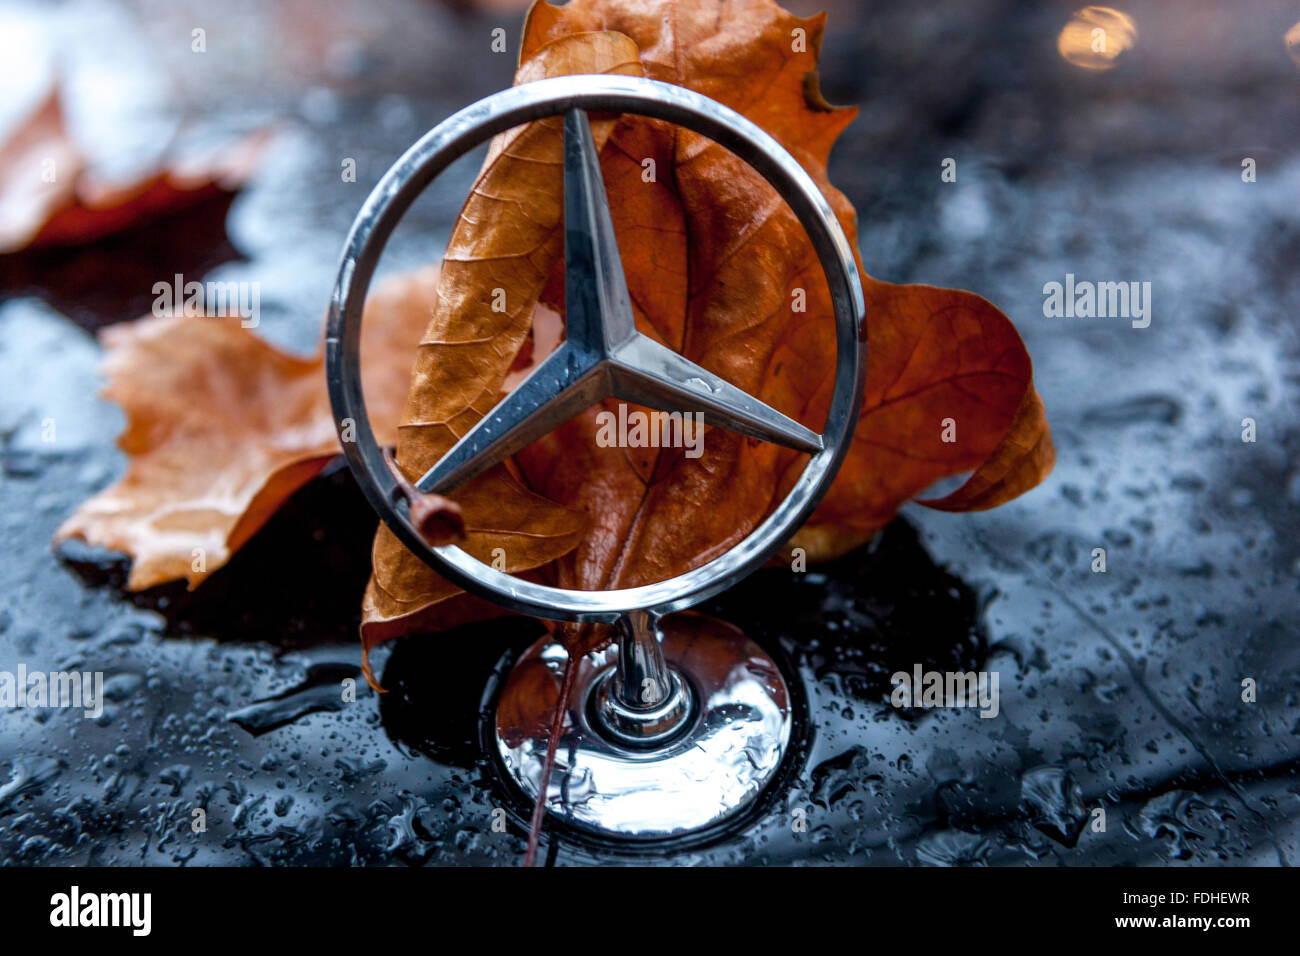 Old mercedes car stock photos old mercedes car stock for Mercedes benz sign in